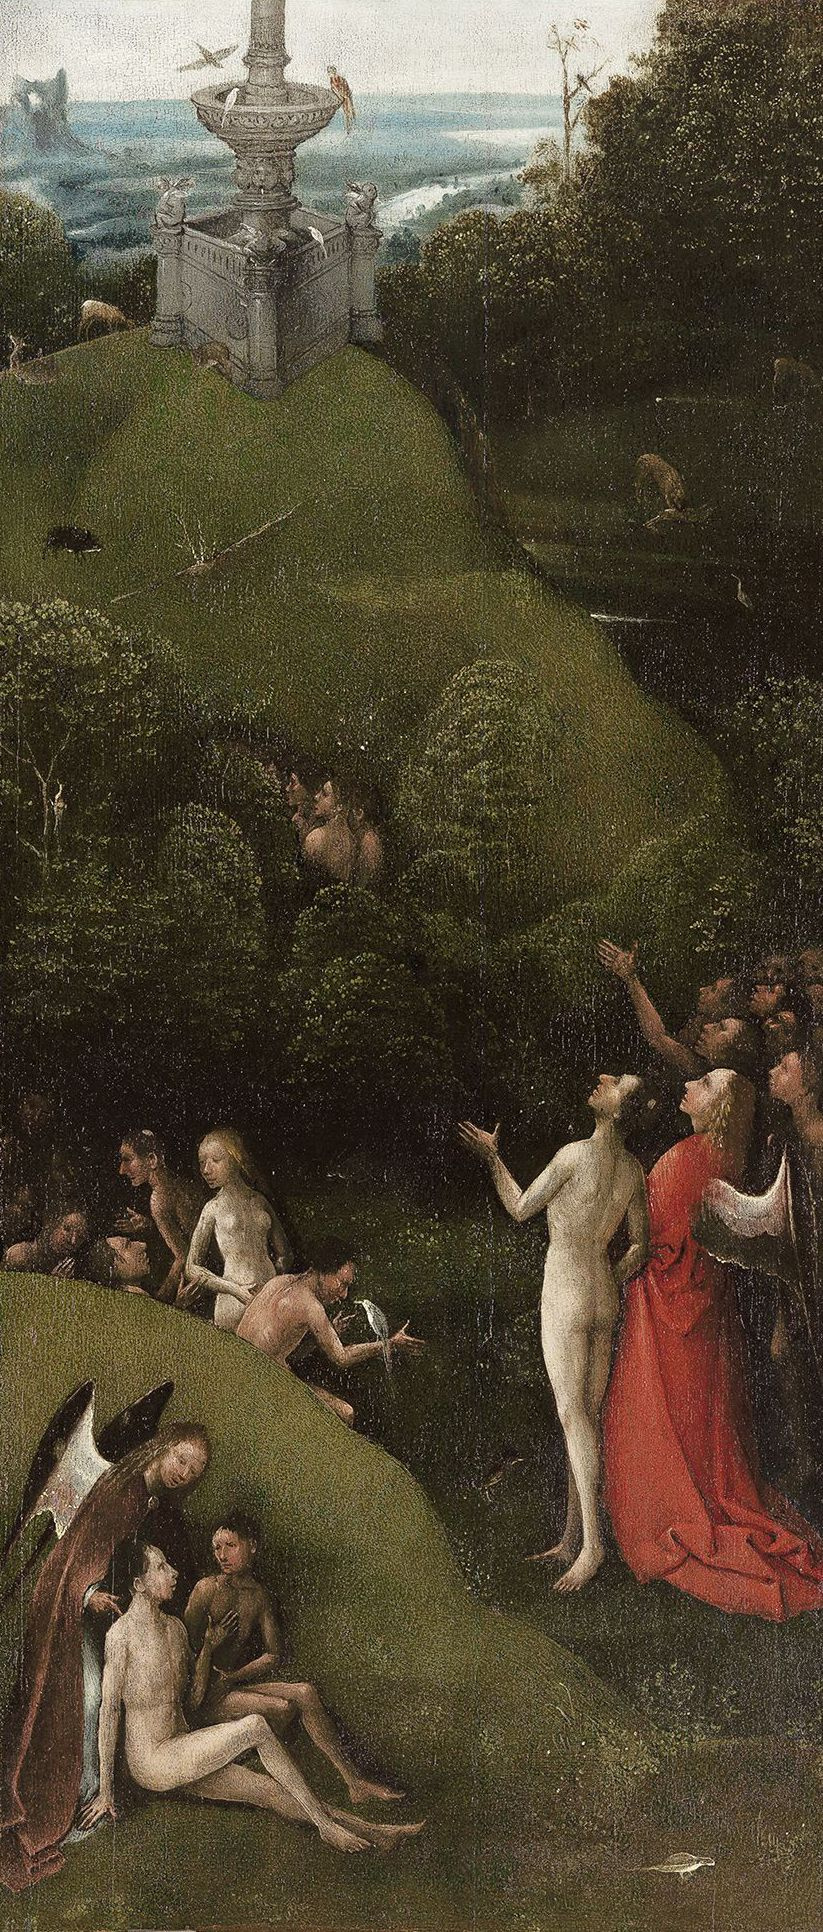 Hieronymus Bosch. Earthly Paradise. The polyptych Visions of the underworld (Blessed and cursed). The left panel